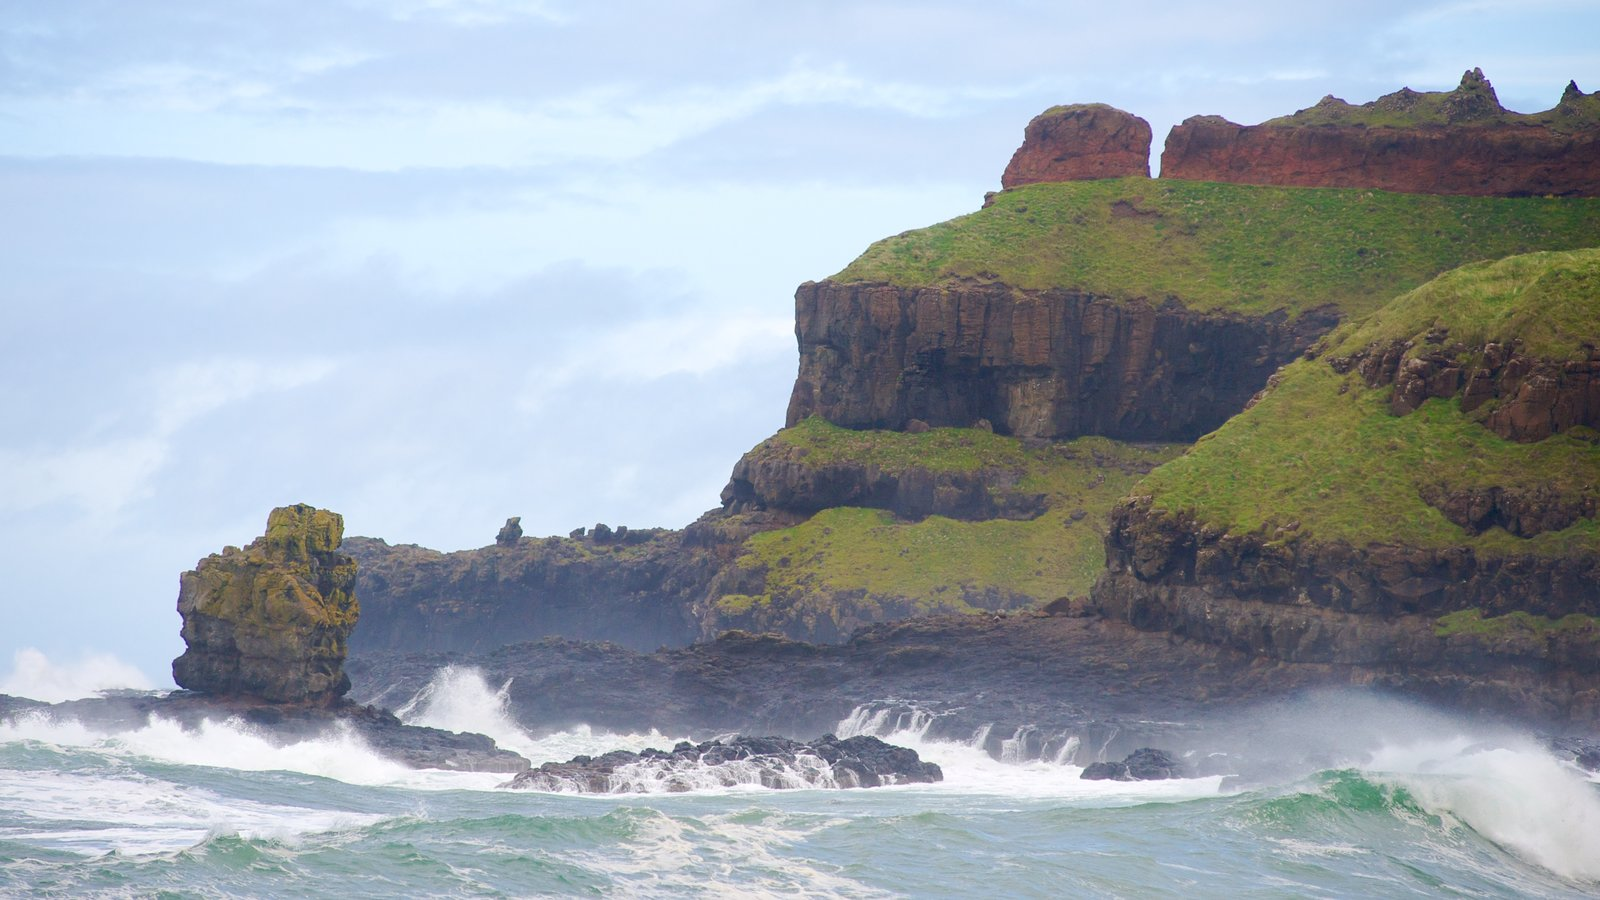 Giant\'s Causeway featuring rocky coastline, surf and general coastal views